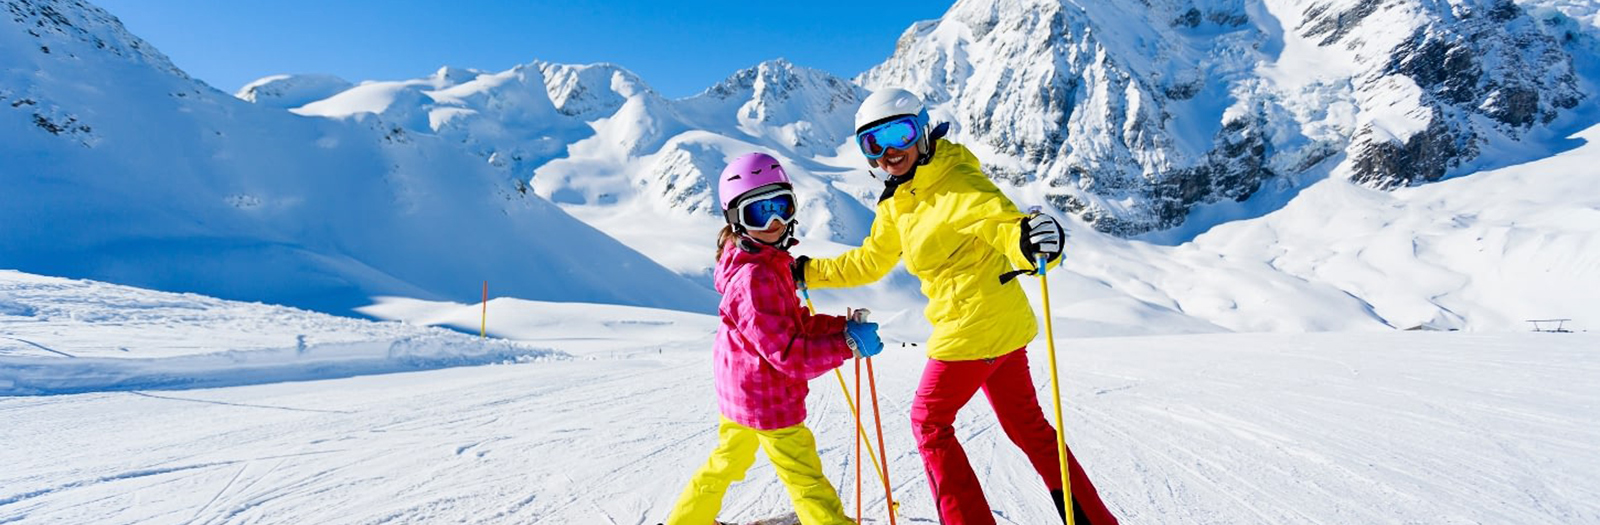 How to plan your first ski trip, first ski vacation, first time skiing